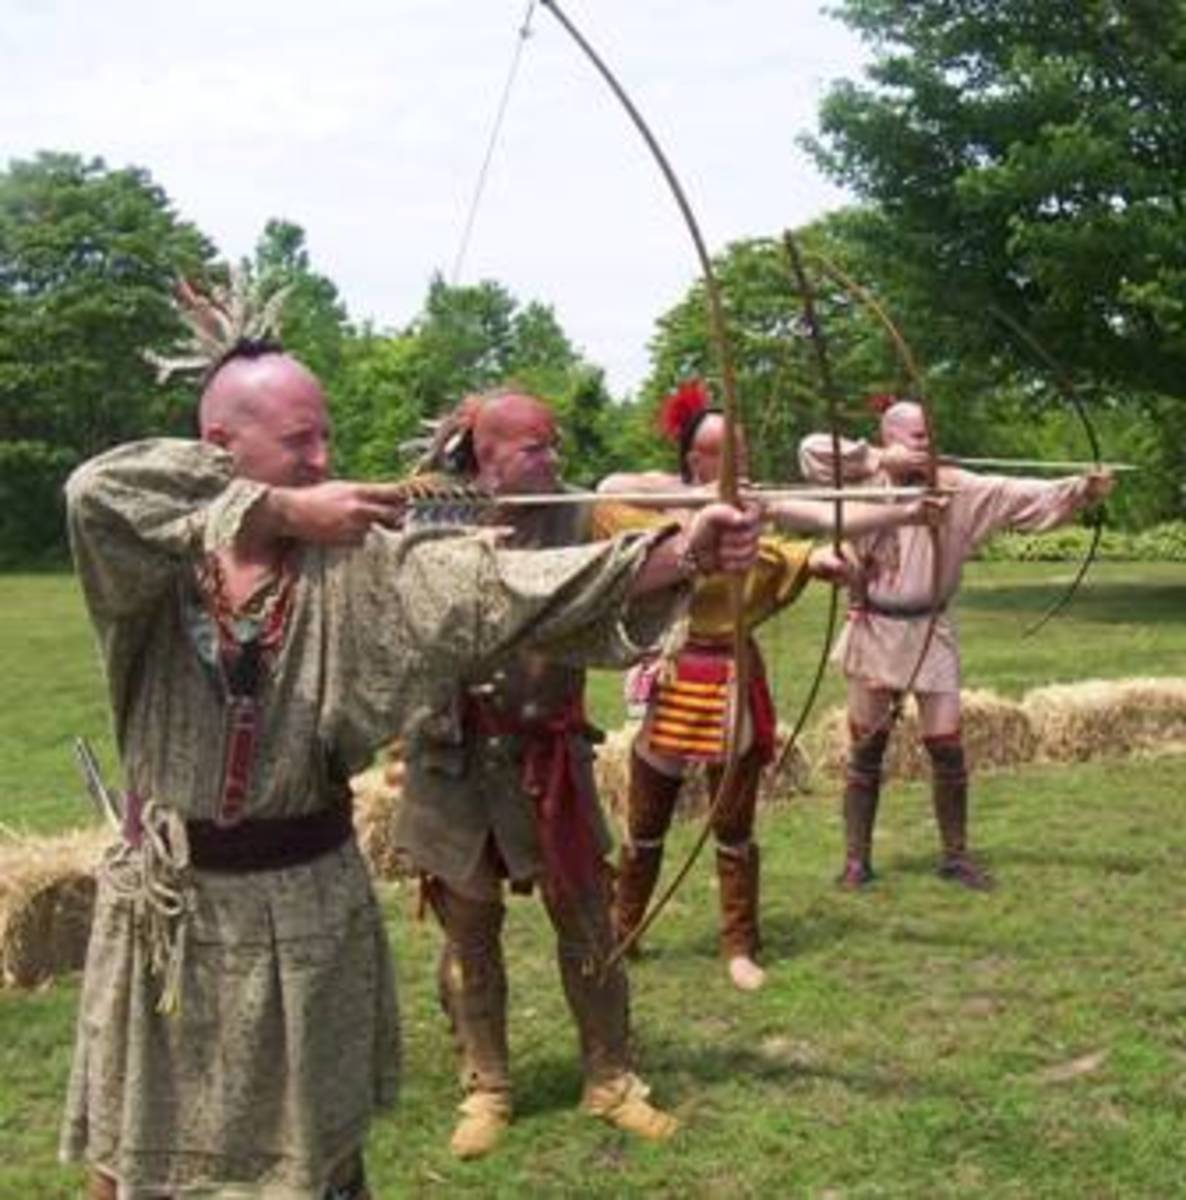 Angel Mounds Archery Demonstration  from angelmounds.org